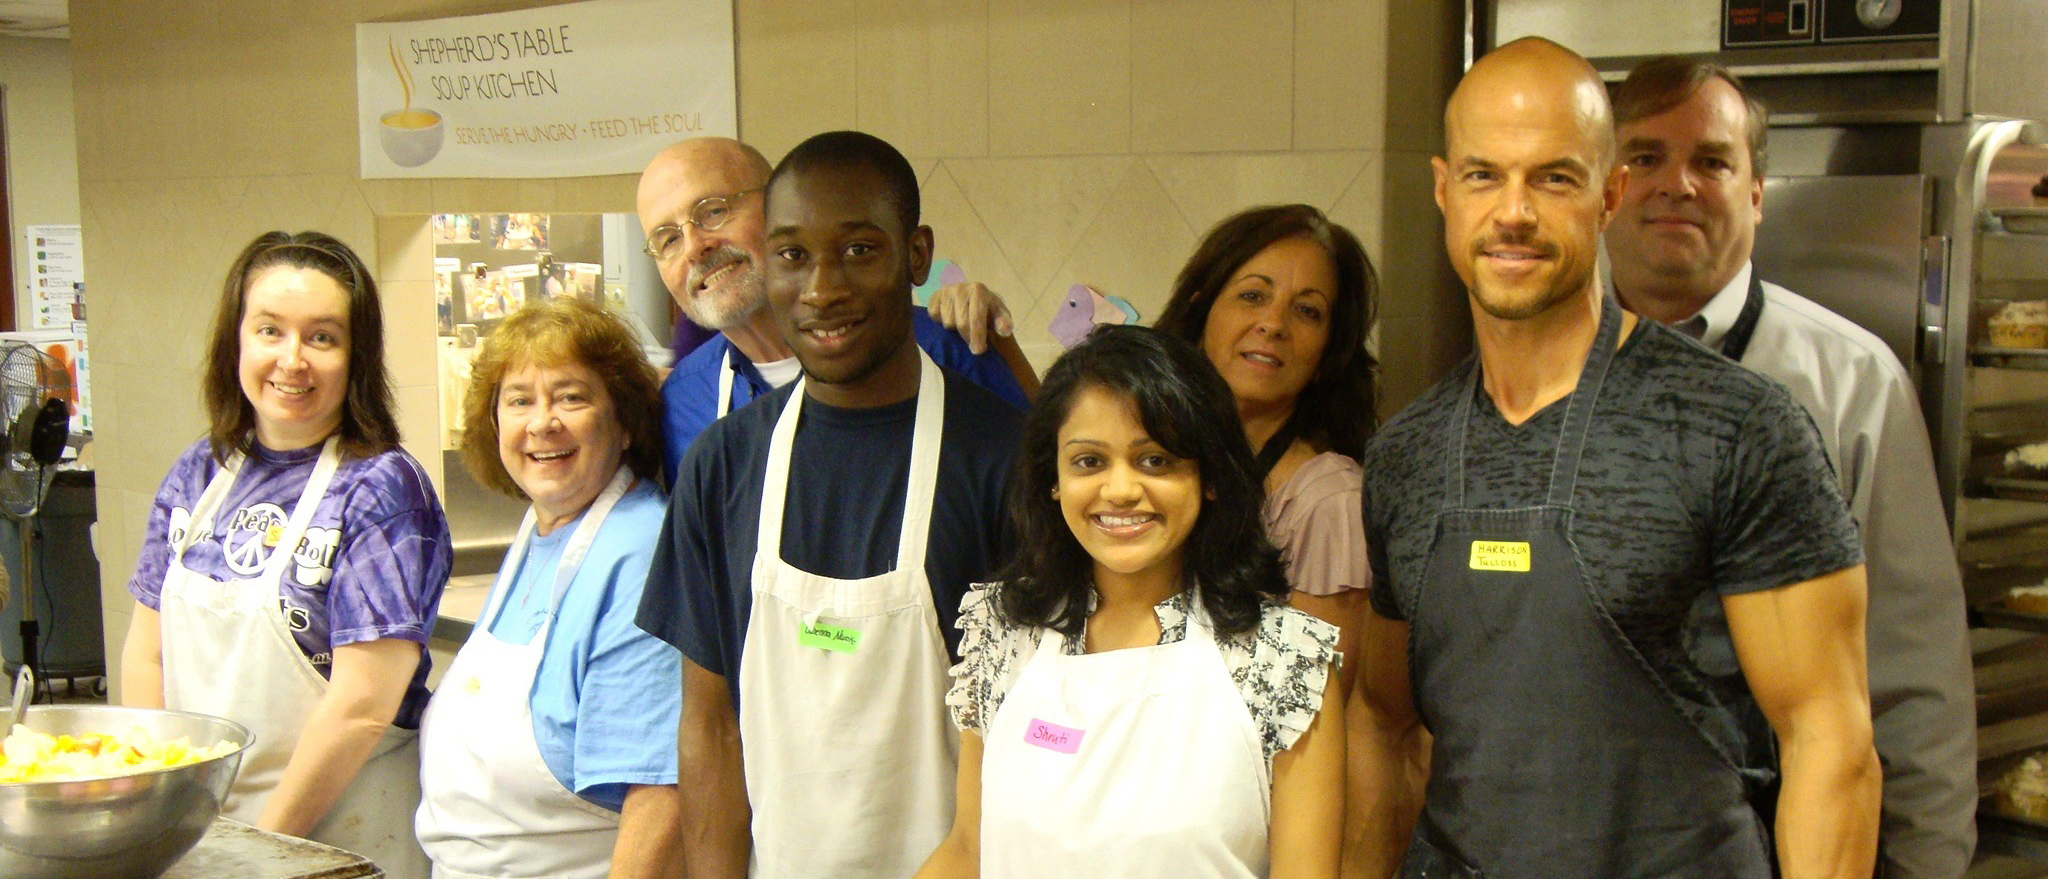 RFOWC Volunteering at Shepherd's Table Soup Kitchen in Raleigh - Serving Meals to Those in the Greatest of Need